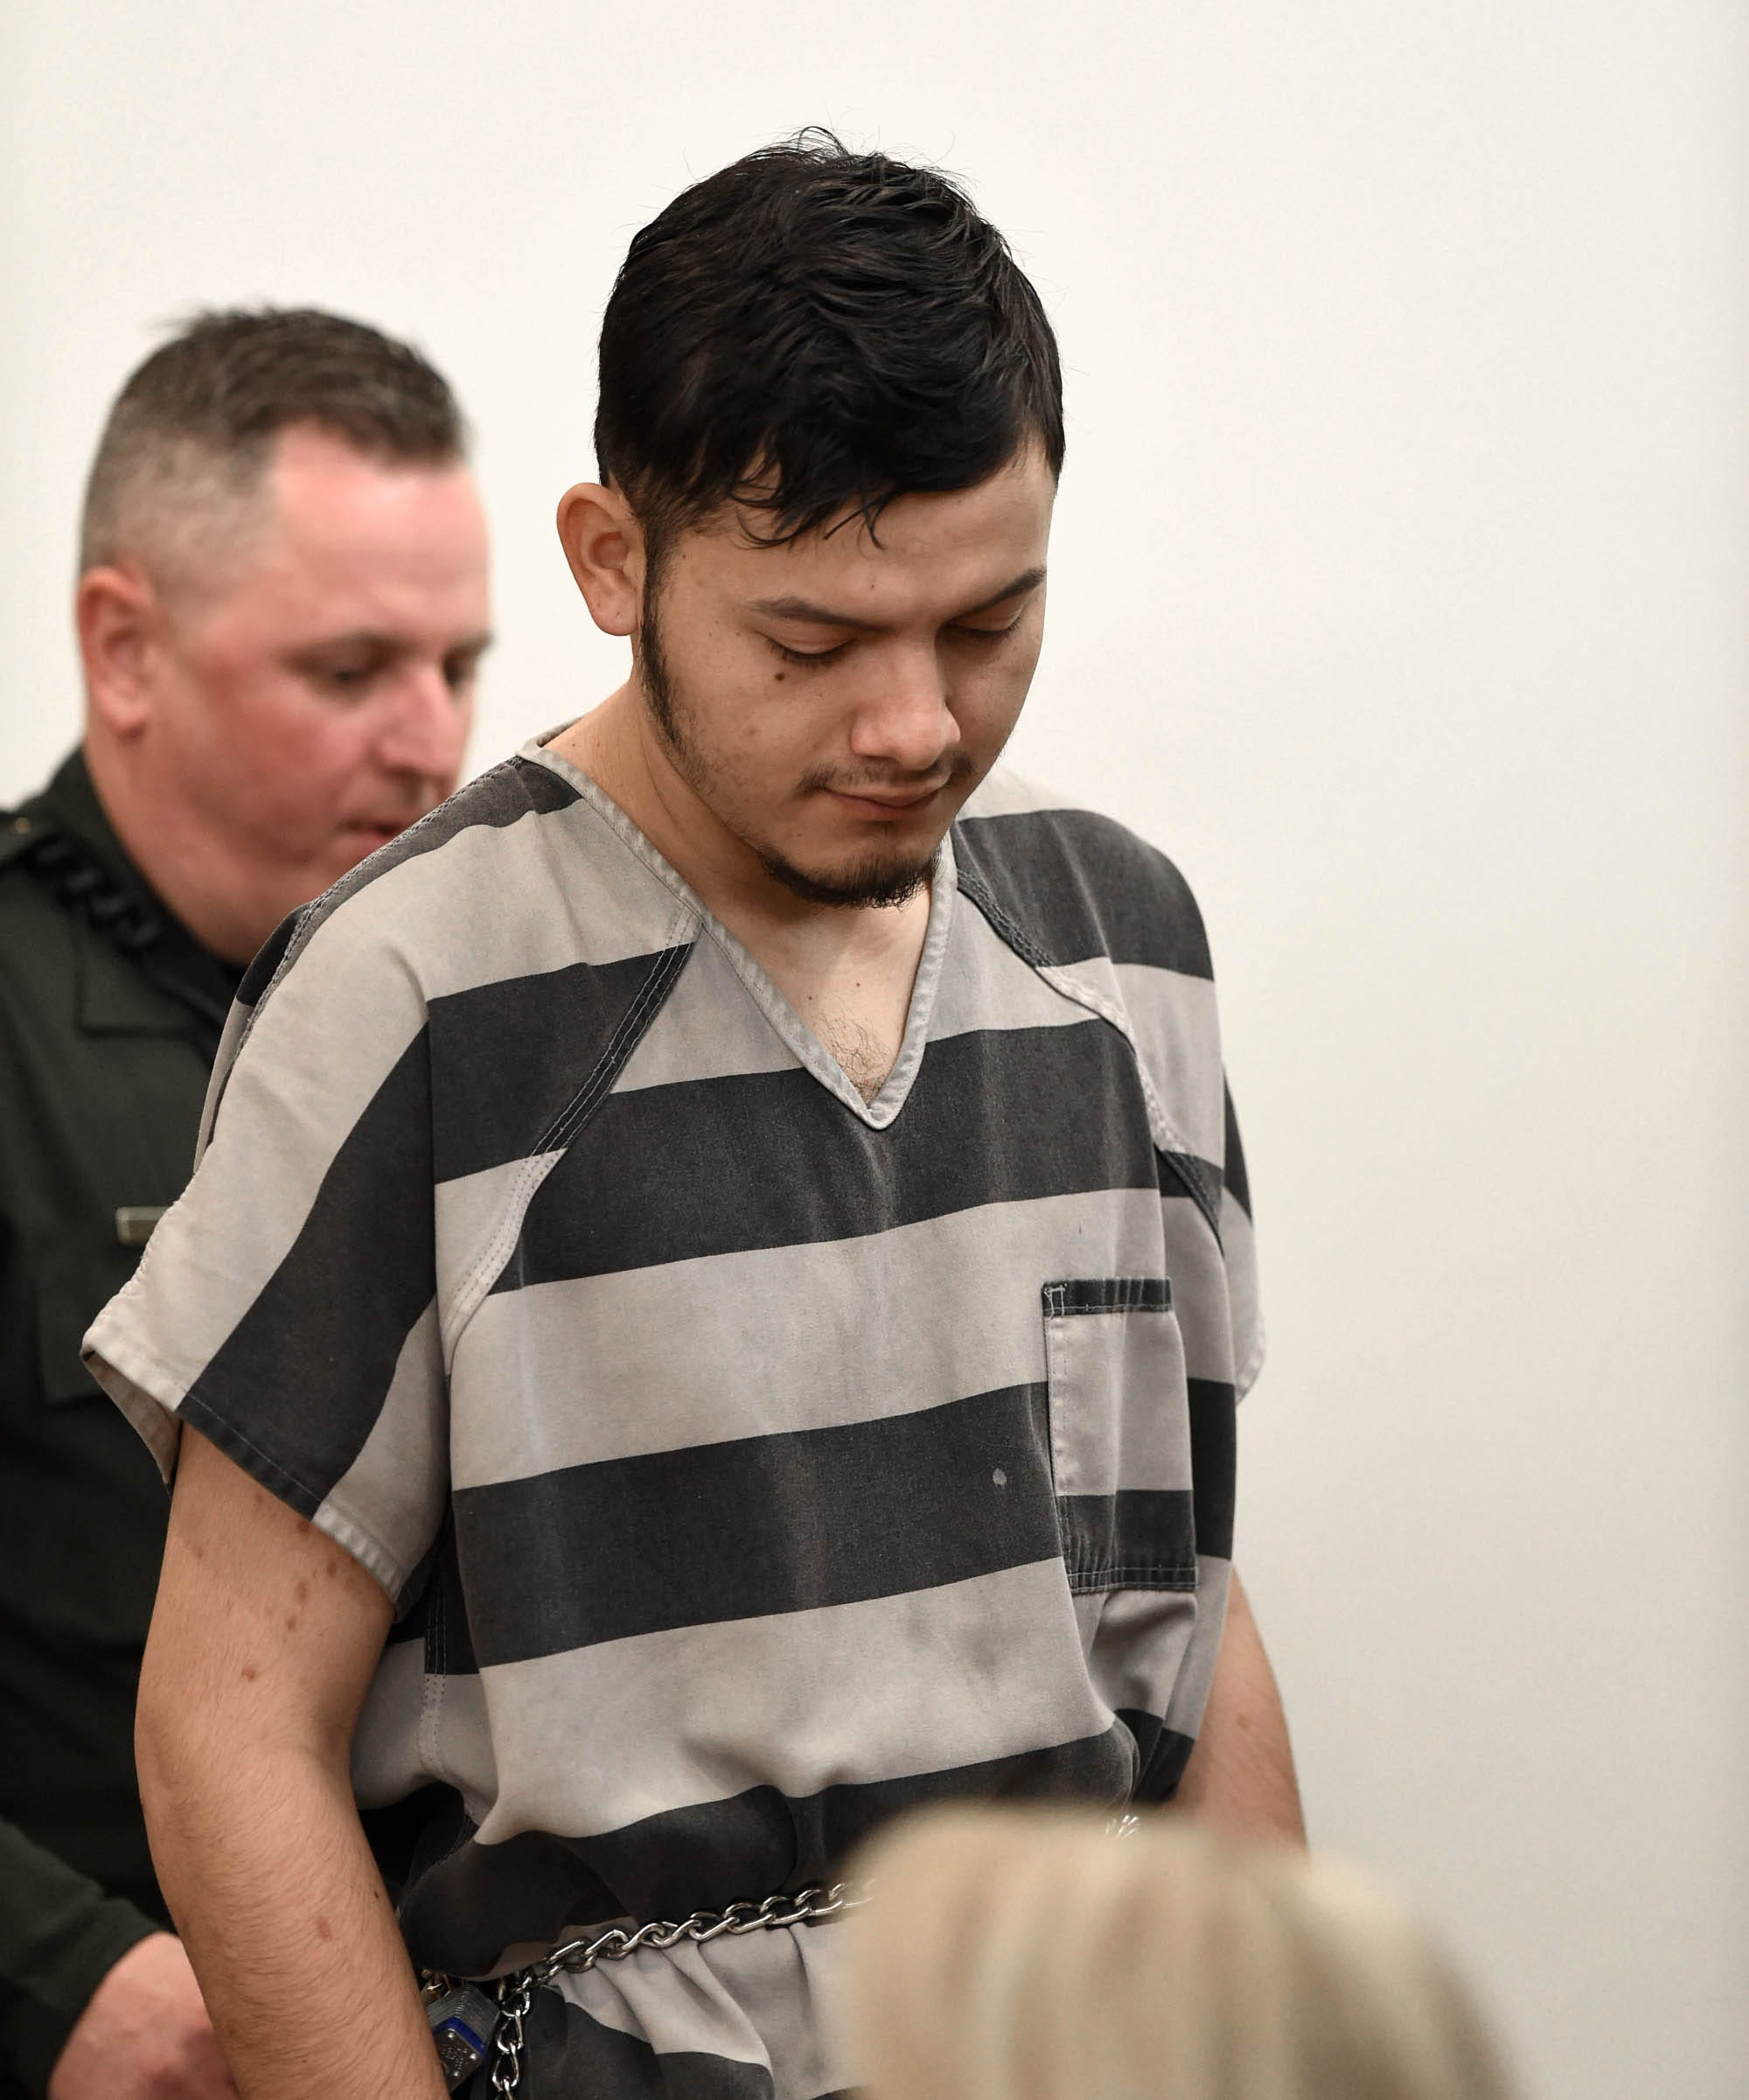 Watch: Martinez-Guzman to face murder charges in Washoe County